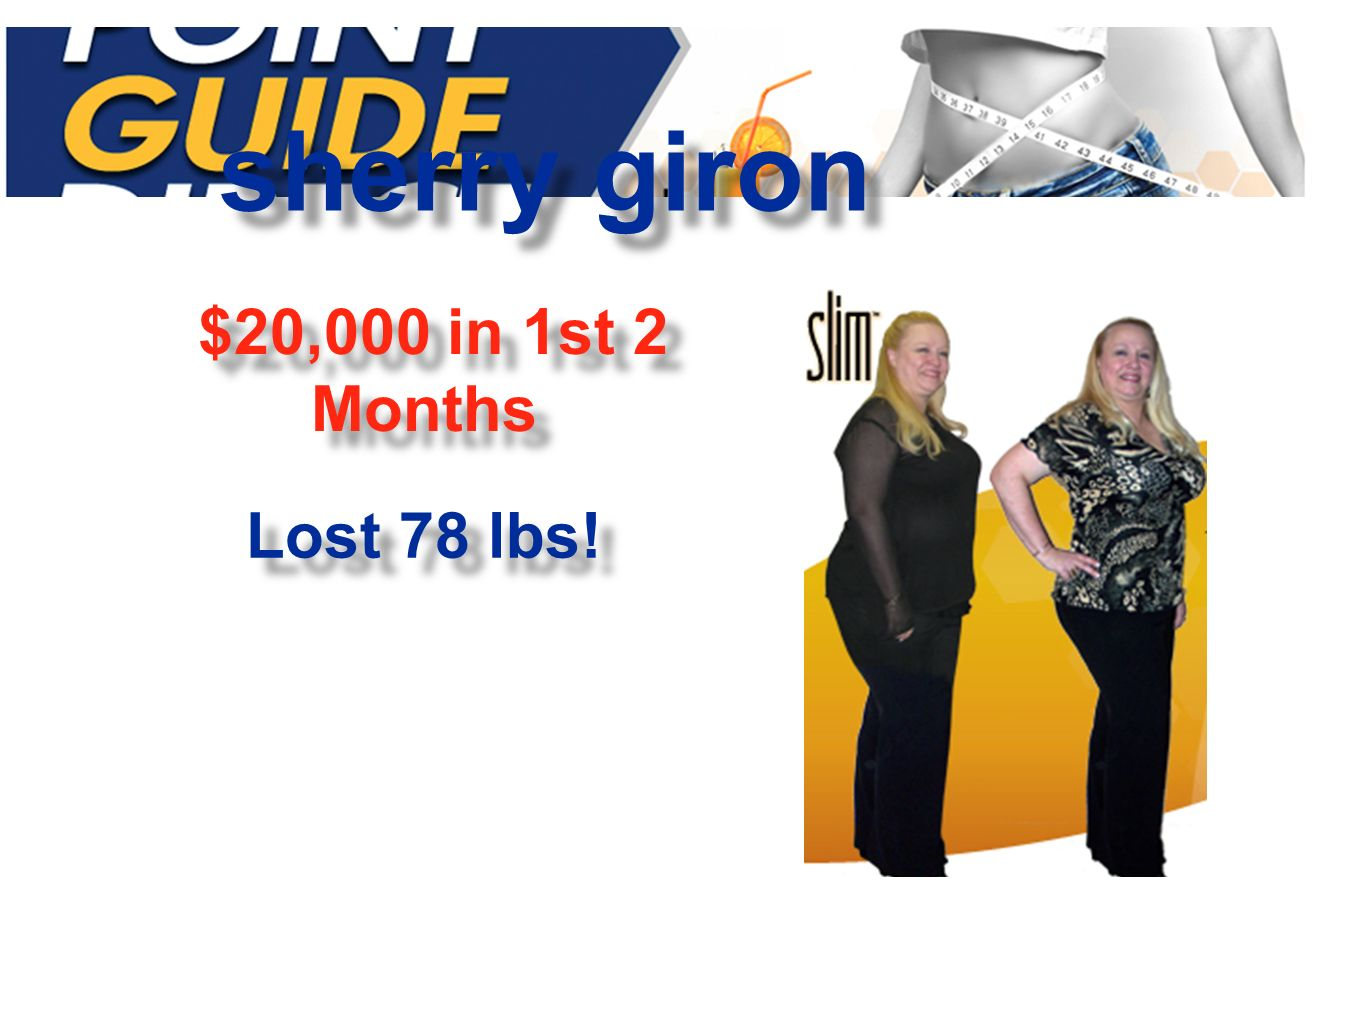 sherry giron $20,000 in 1st 2 Months Lost 78 lbs!